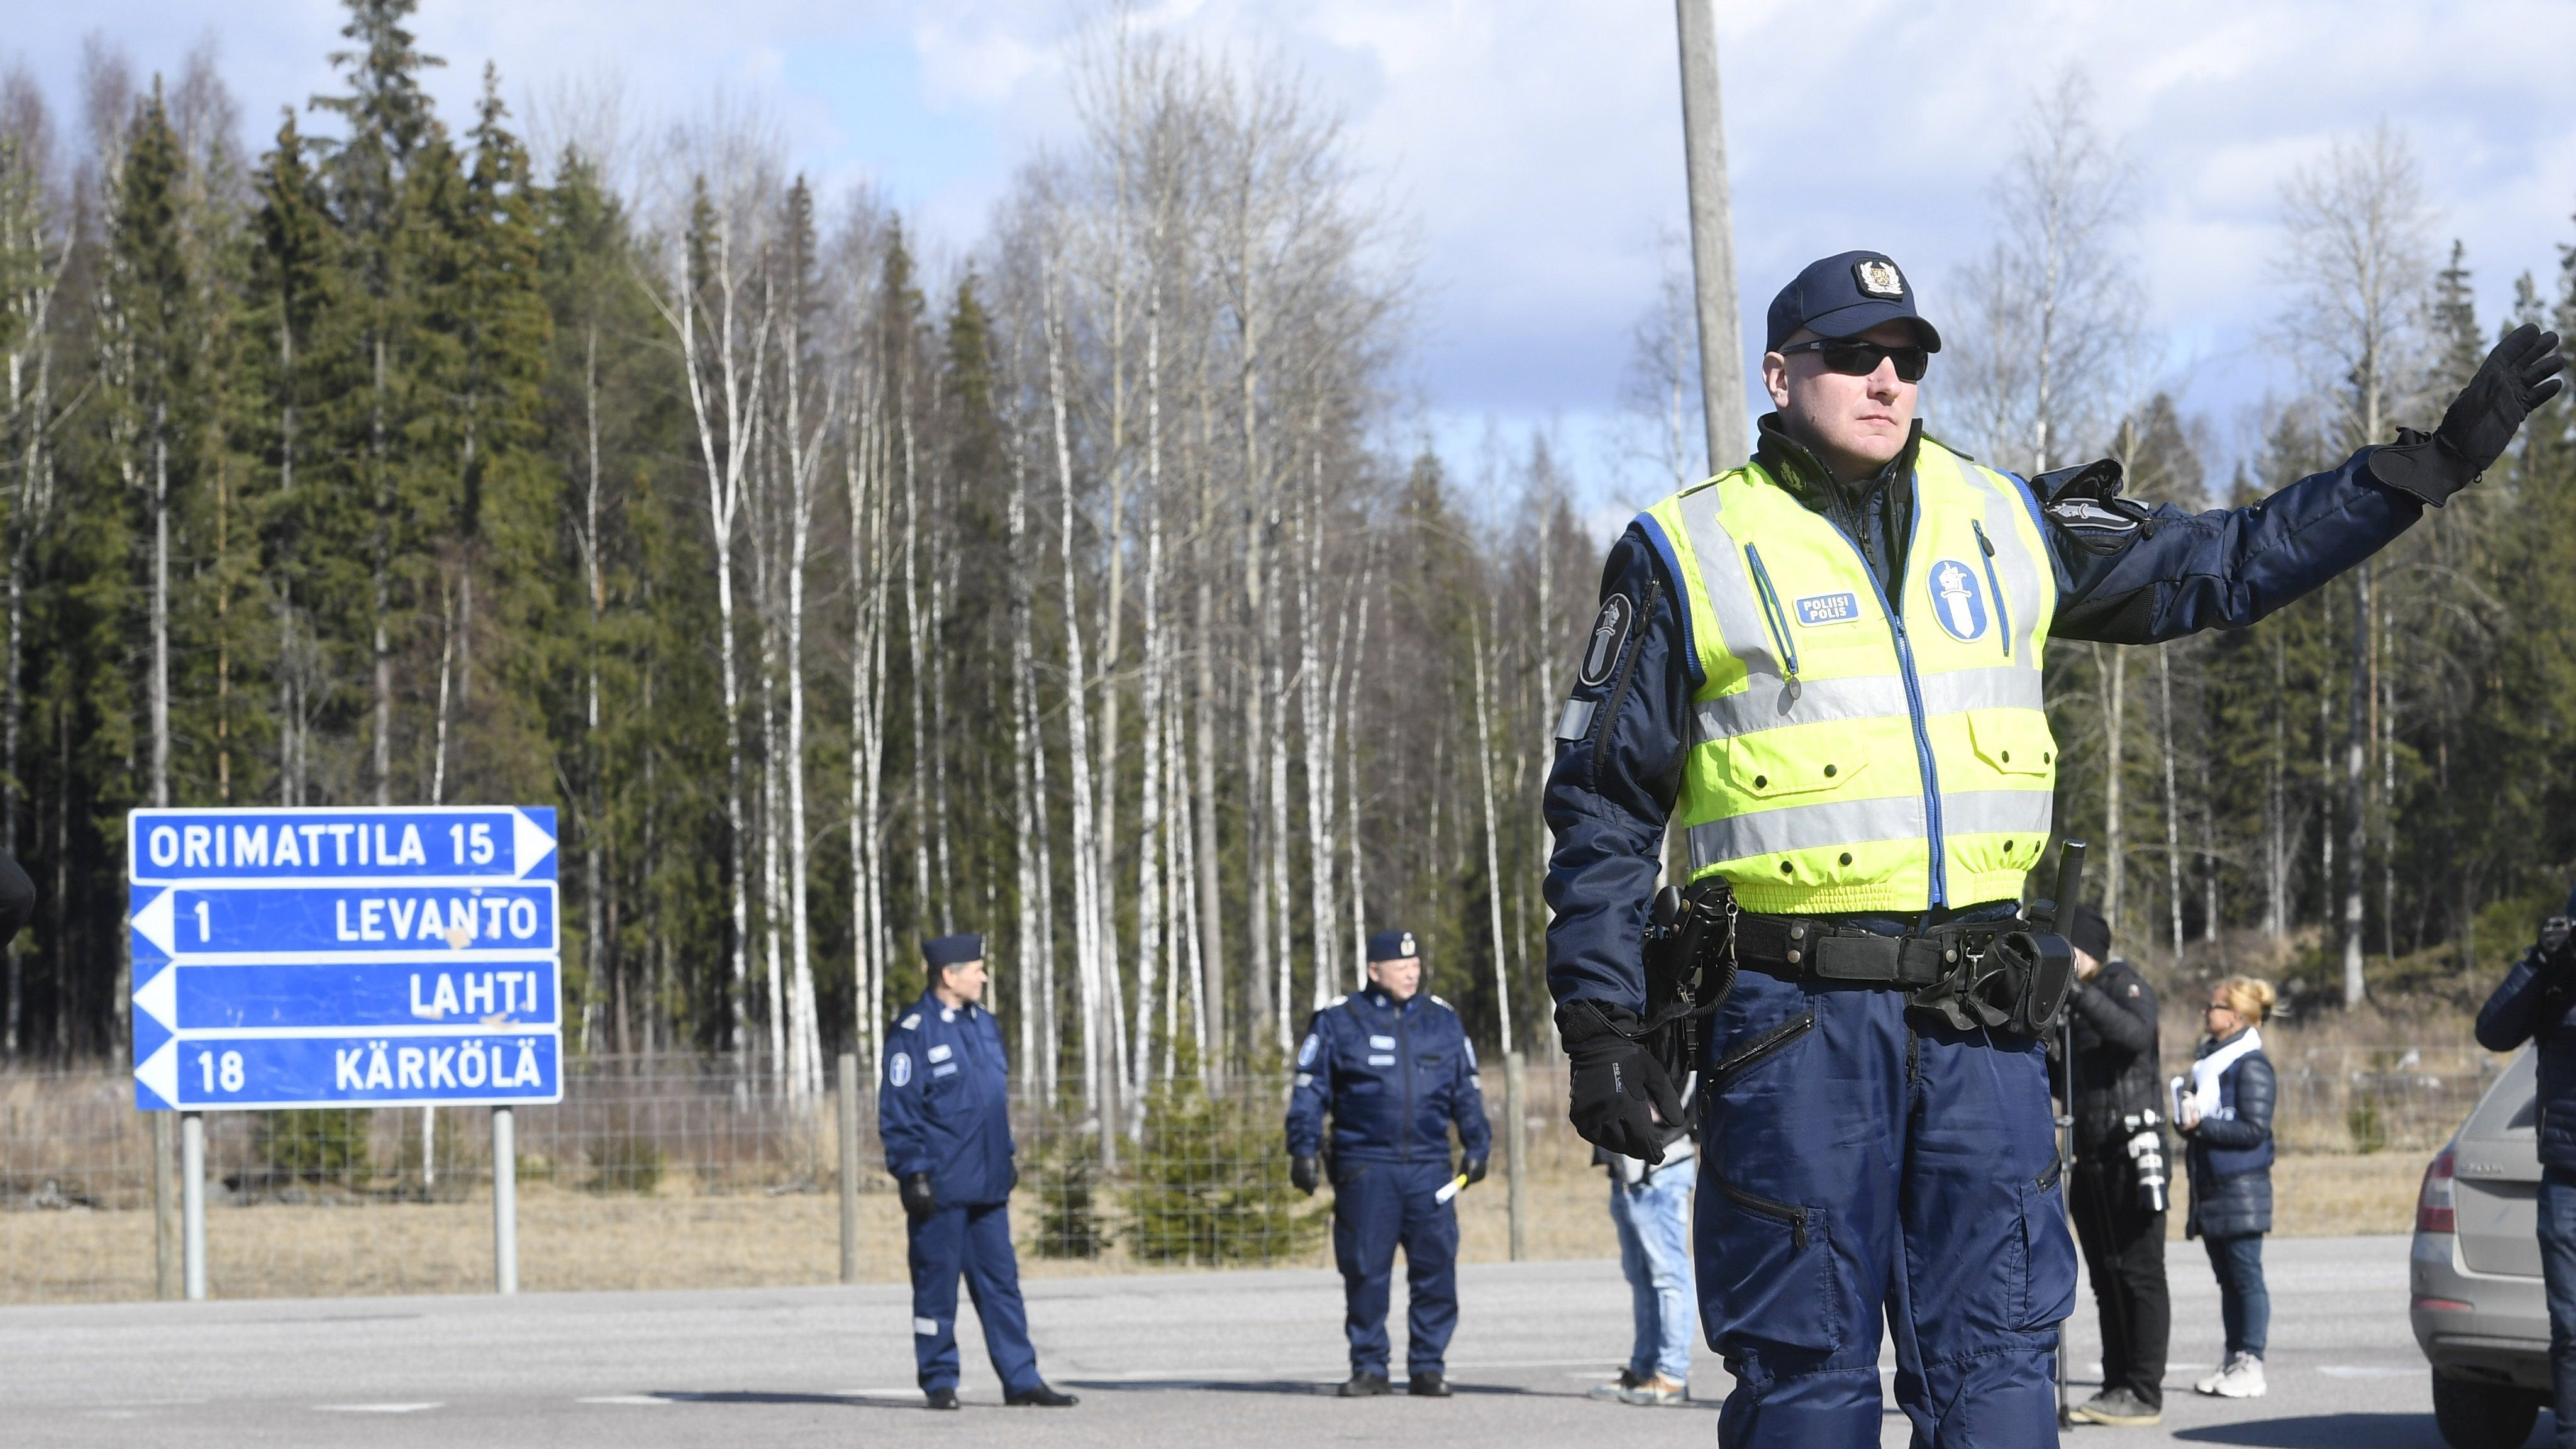 Freedom of movement sacrified to protect Finnish population